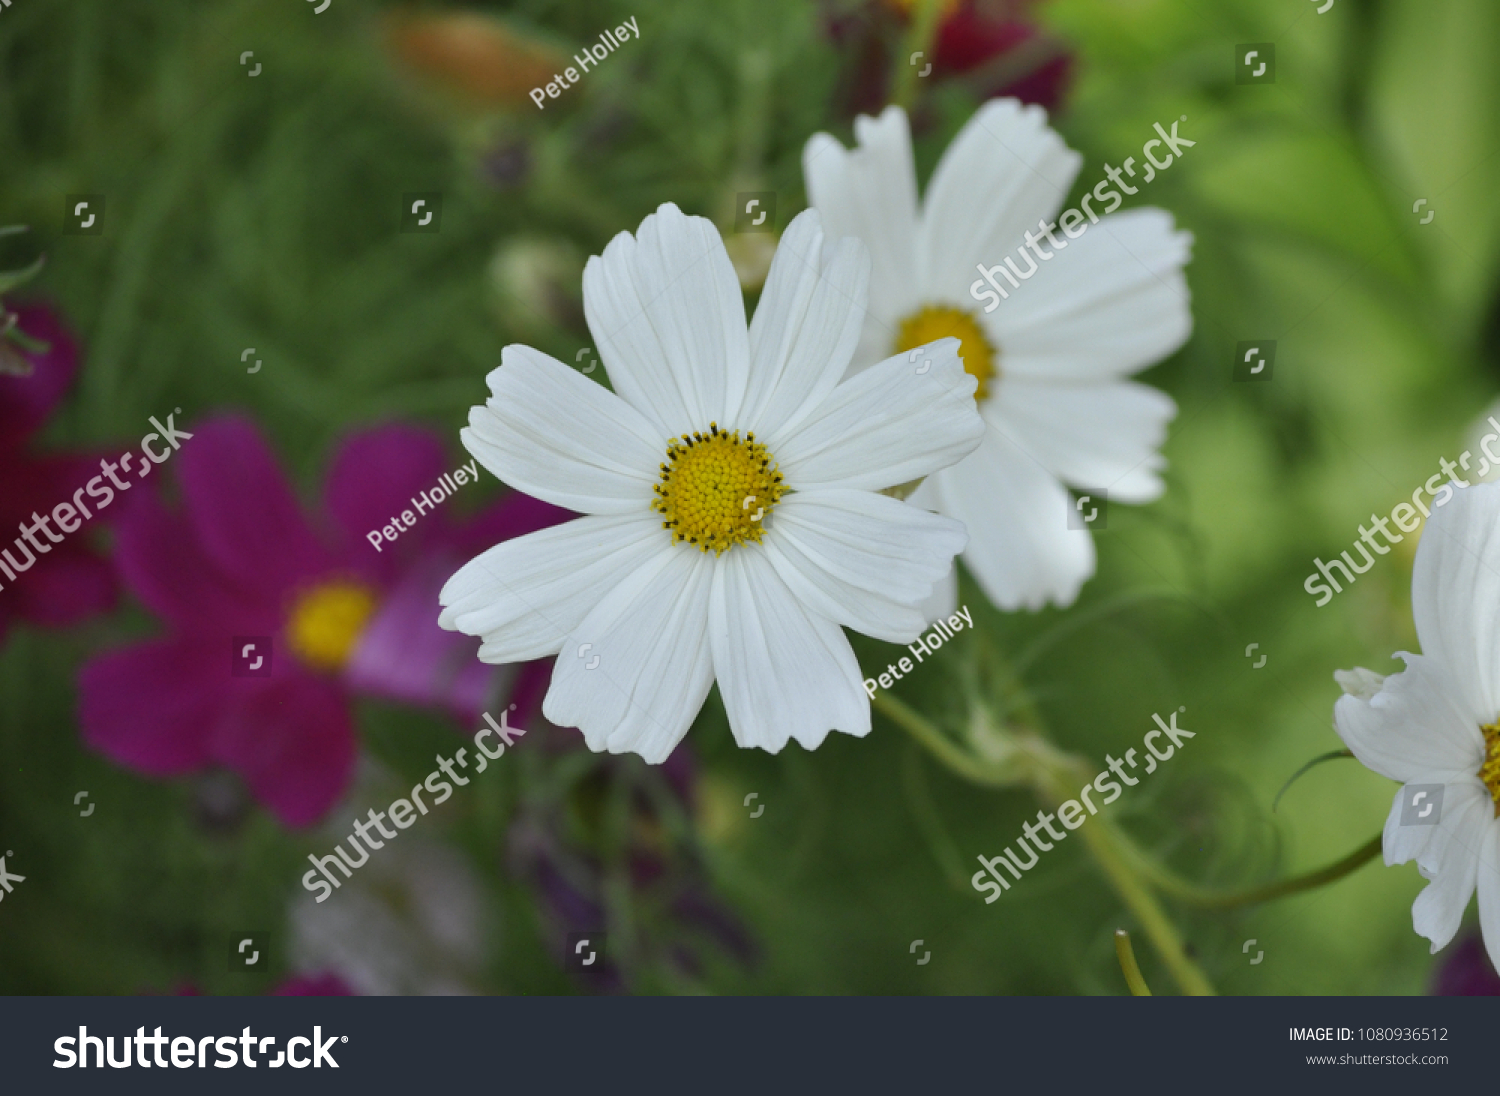 White daisy like flower white petals stock photo royalty free a white daisy like flower with white petals and an yellow centre izmirmasajfo